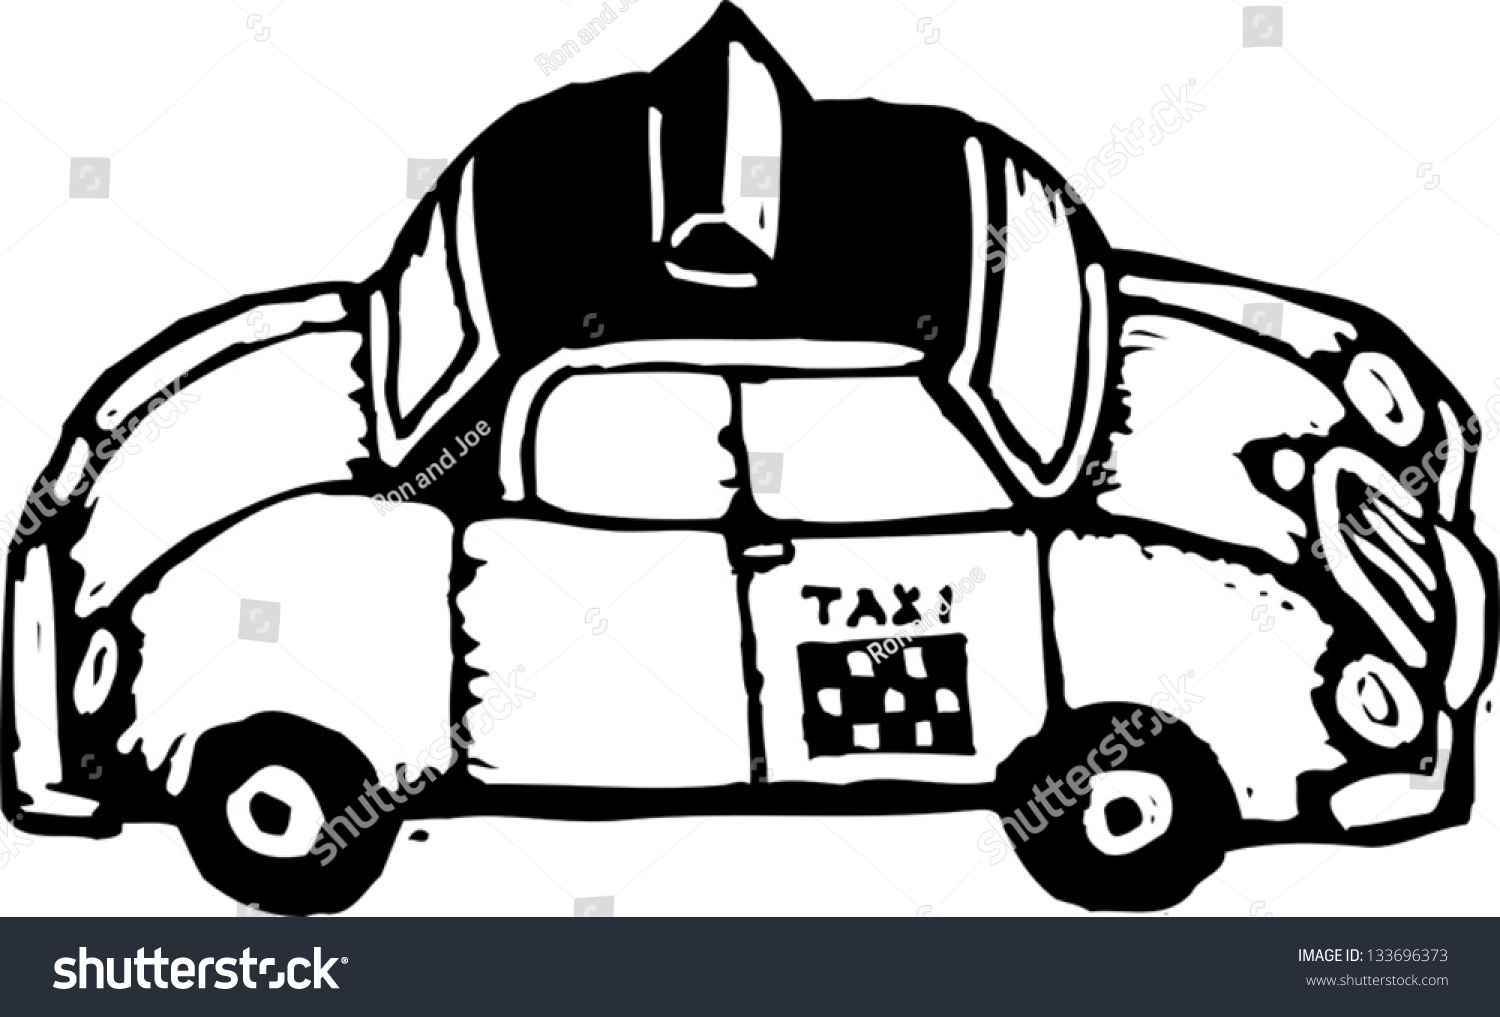 black and white vector illustration of a taxi cab. Black Bedroom Furniture Sets. Home Design Ideas